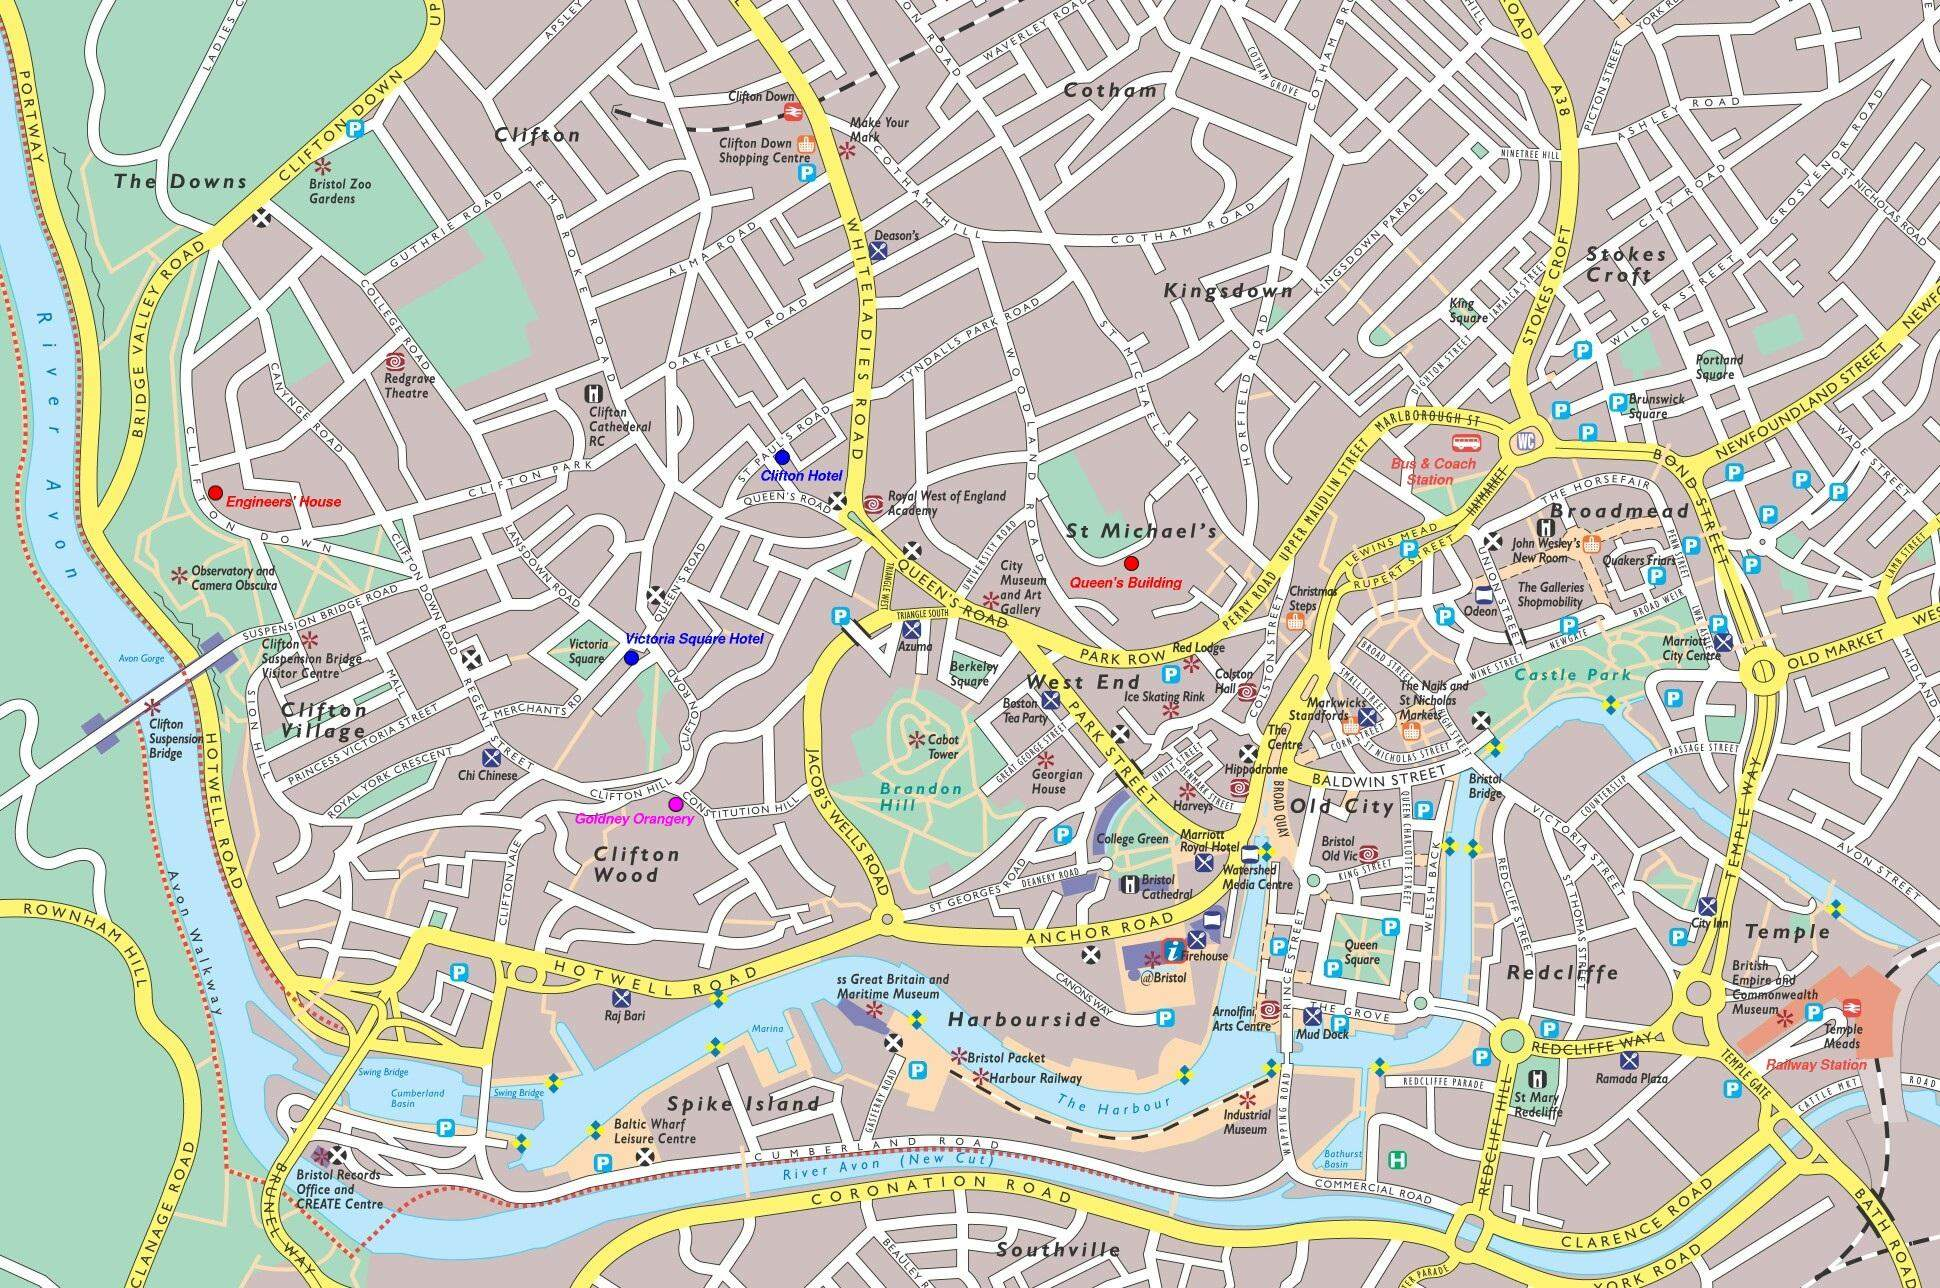 Bristol City Map Large Bristol Maps for Free Download and Print | High Resolution  Bristol City Map